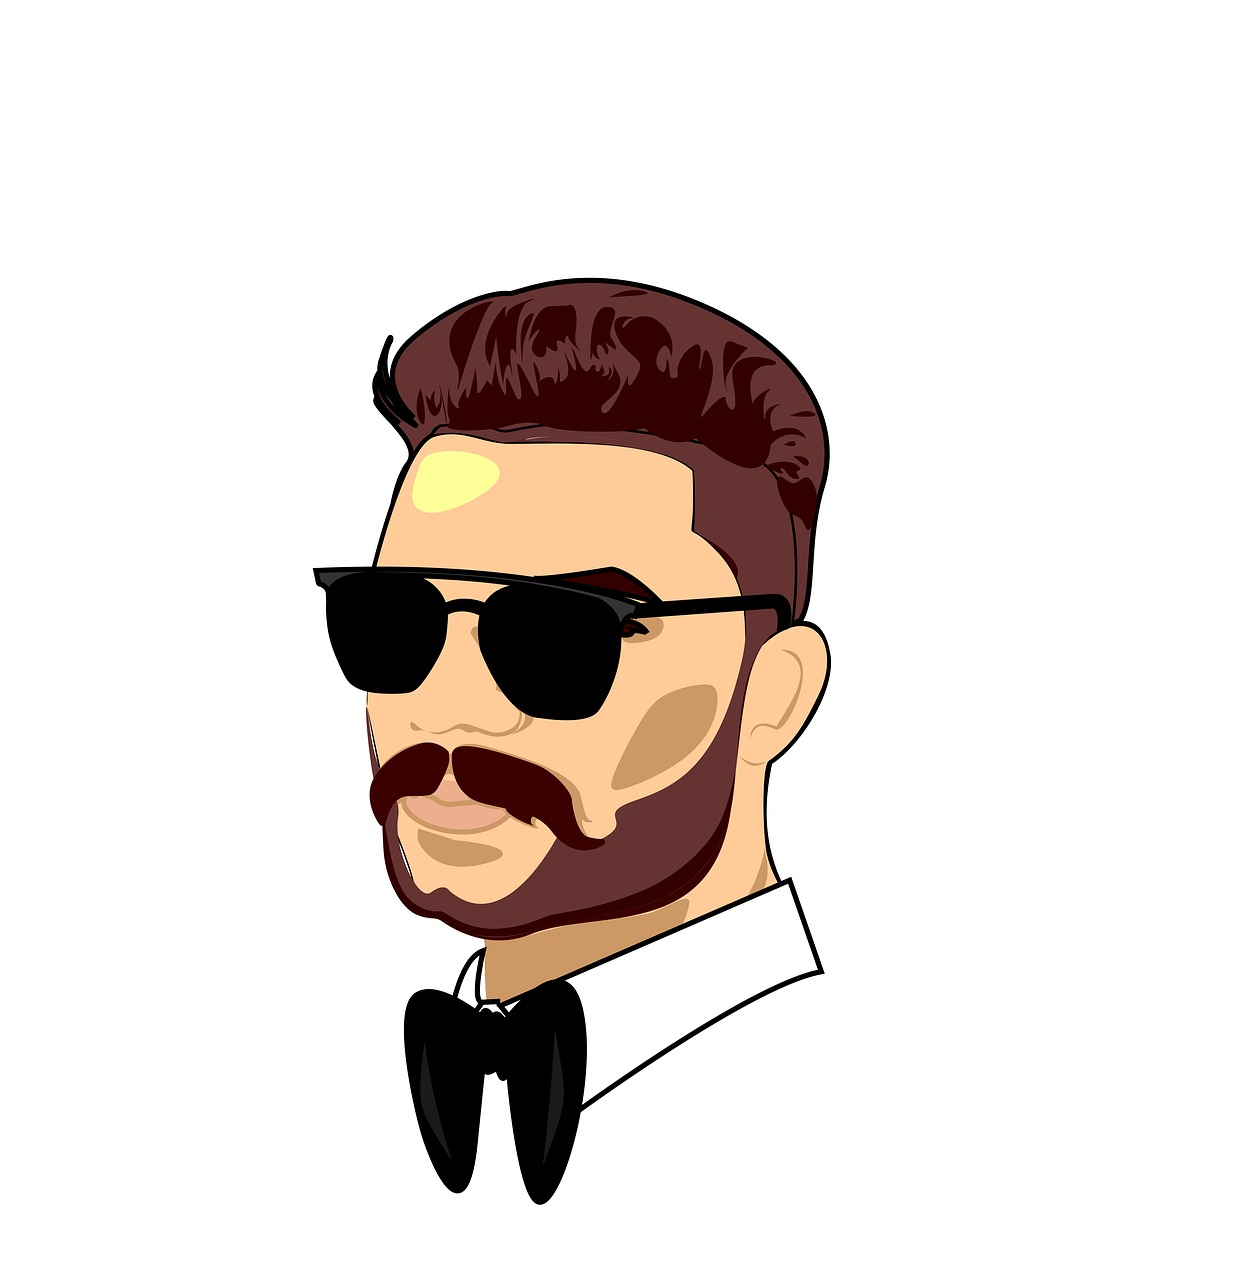 Man Cartoon Gentleman Free Image On Pixabay Almost files can be used for commercial. https creativecommons org licenses publicdomain